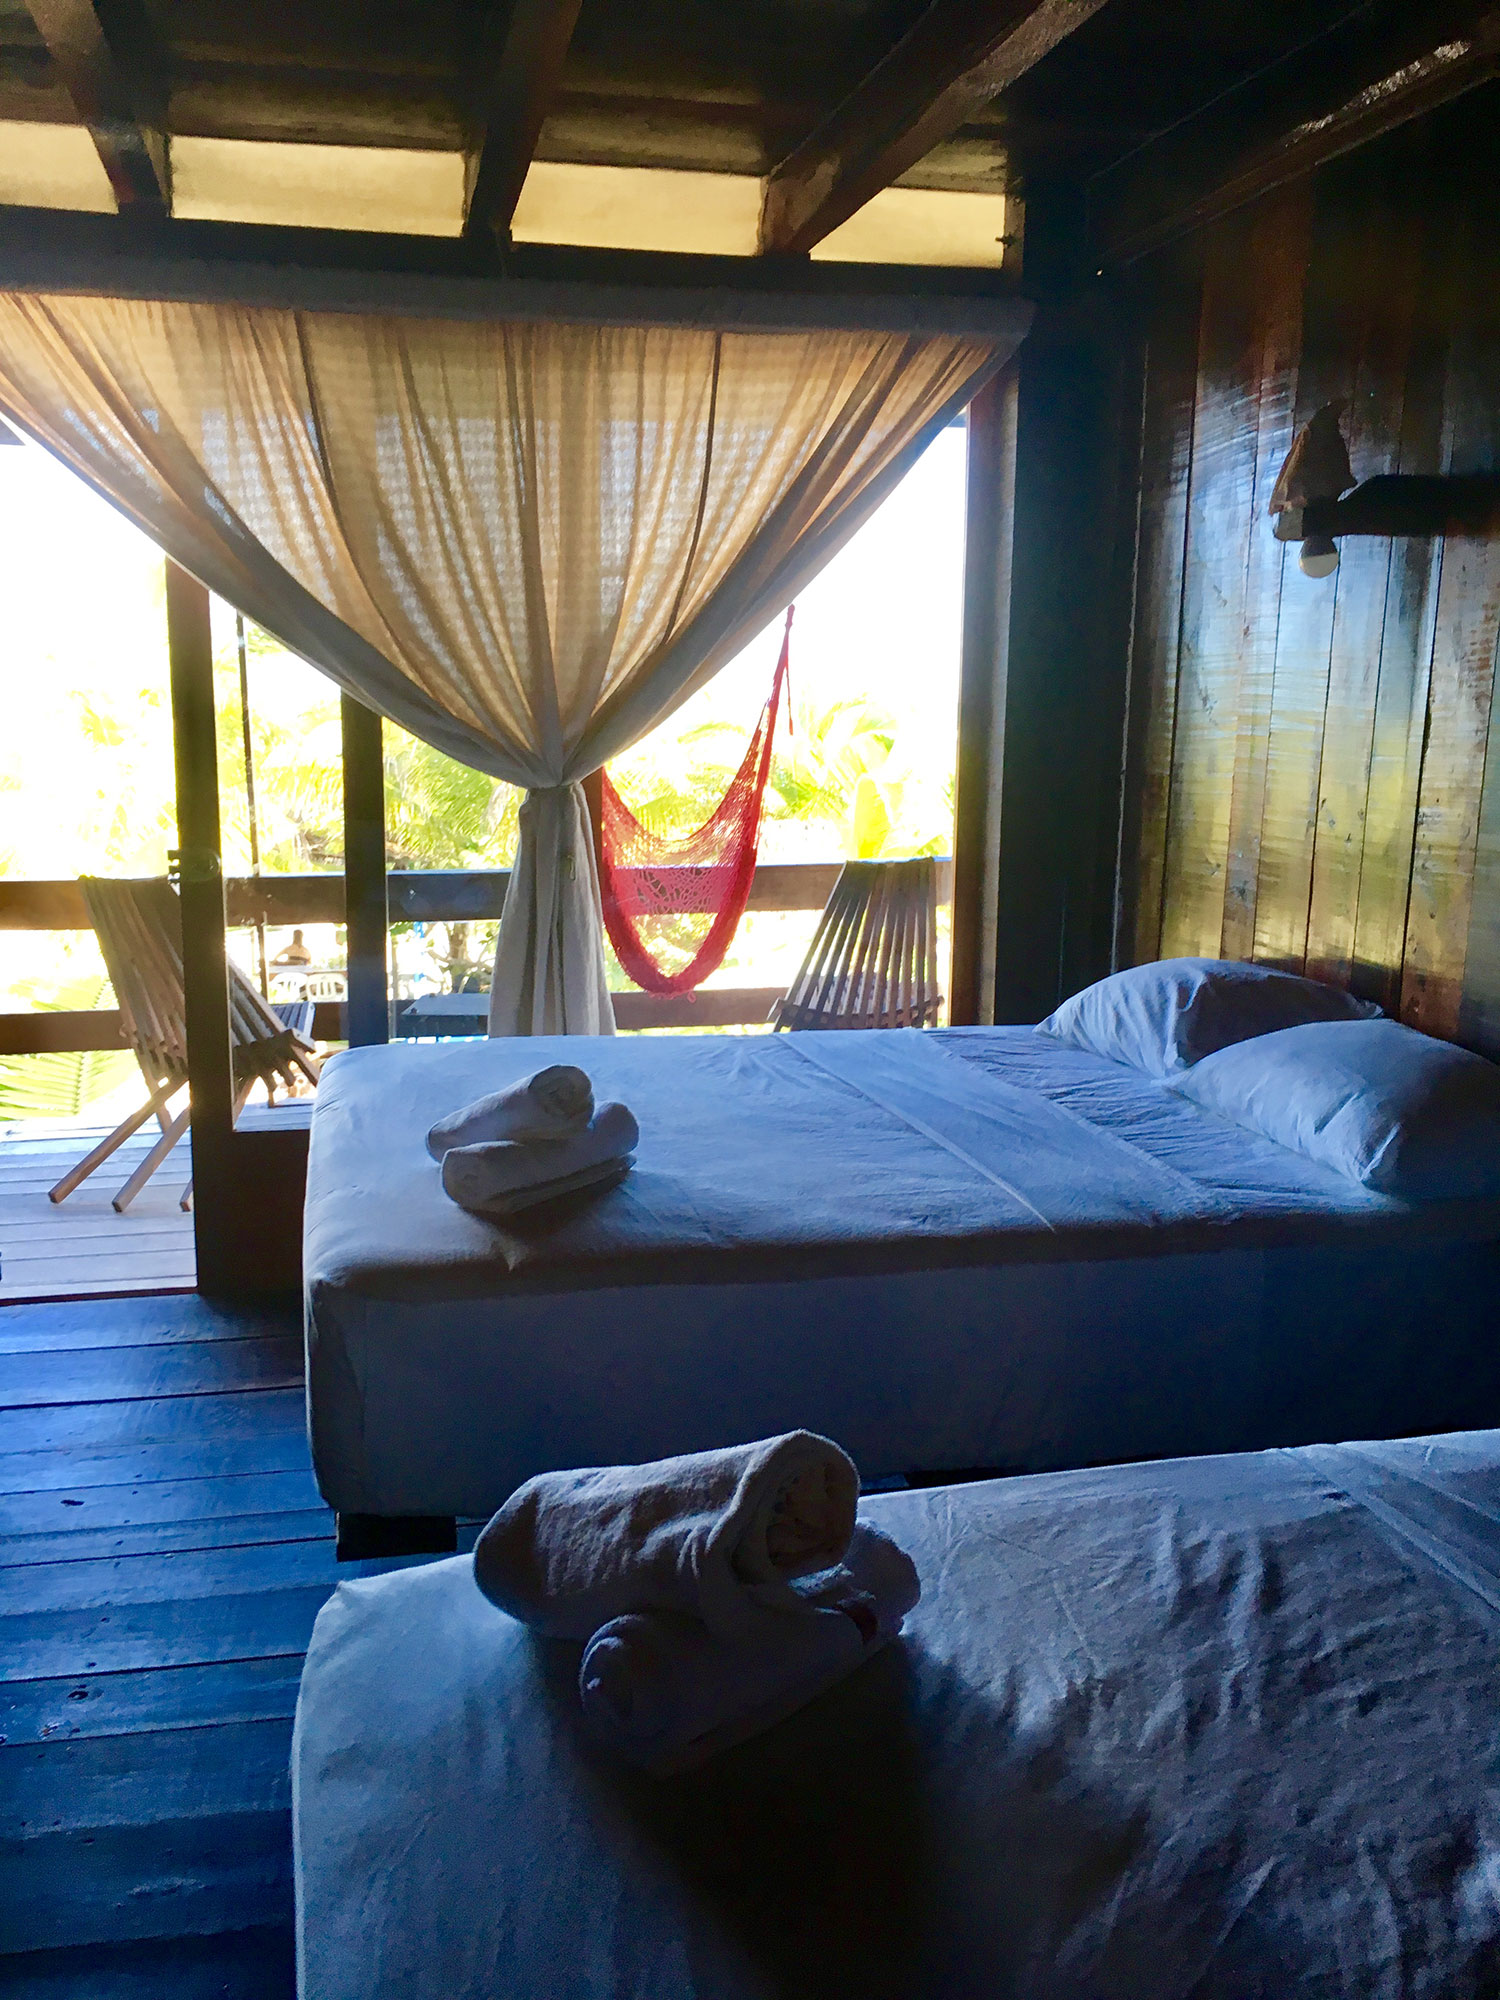 Our room at Blue Kay Eco Resort.